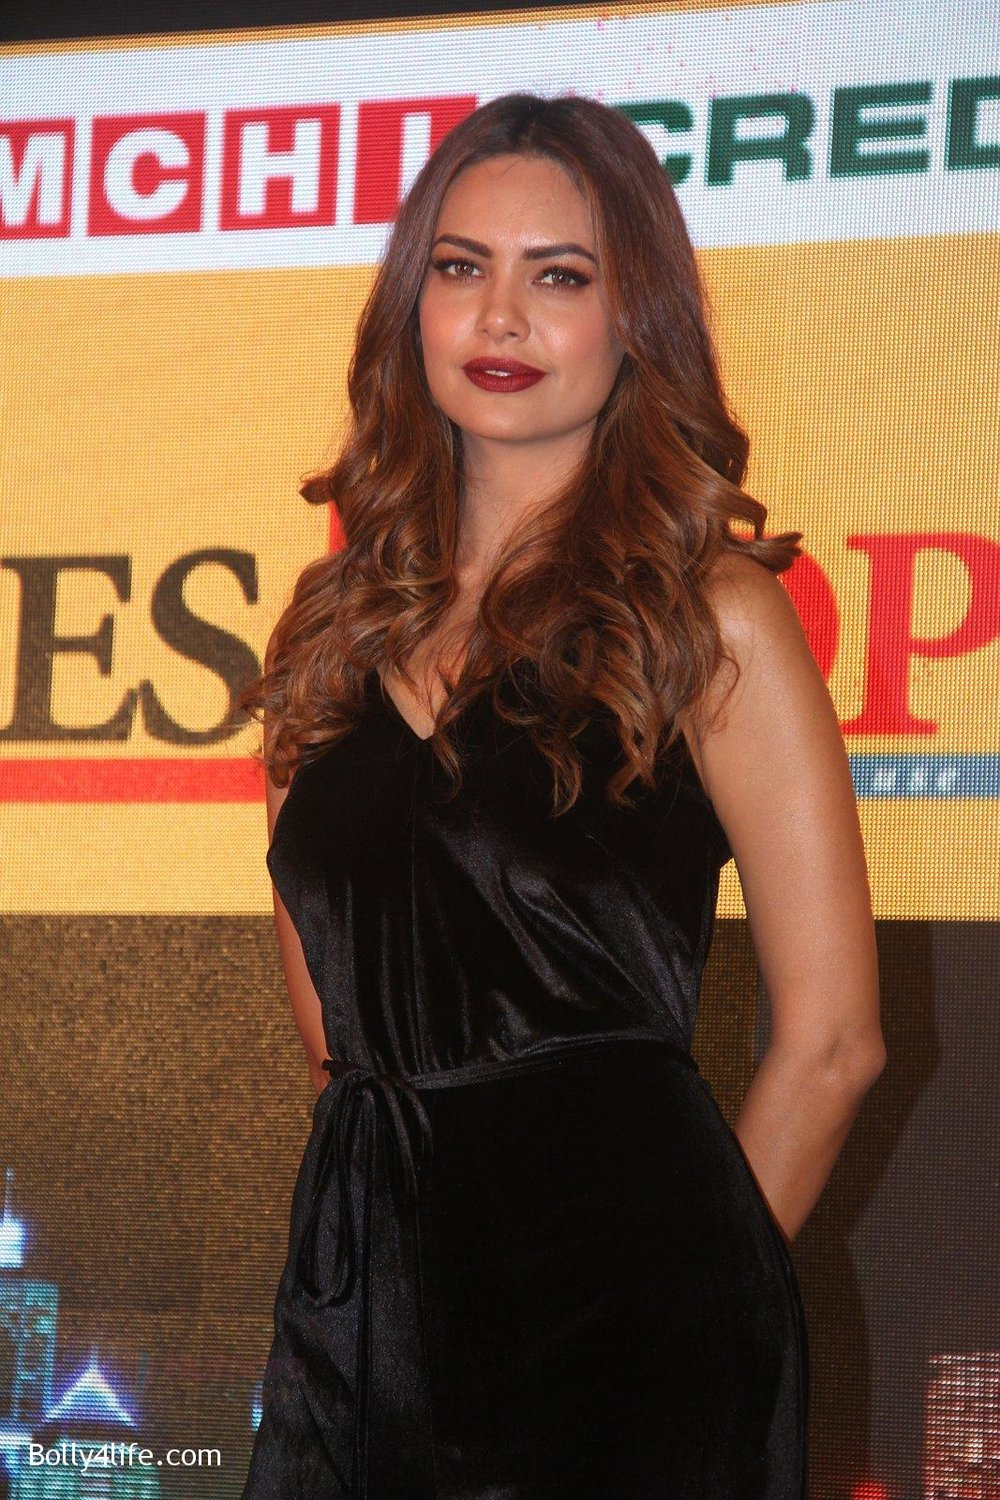 Esha-Gupta-at-Times-Property-event-on-8th-Oct-2016-28.jpg